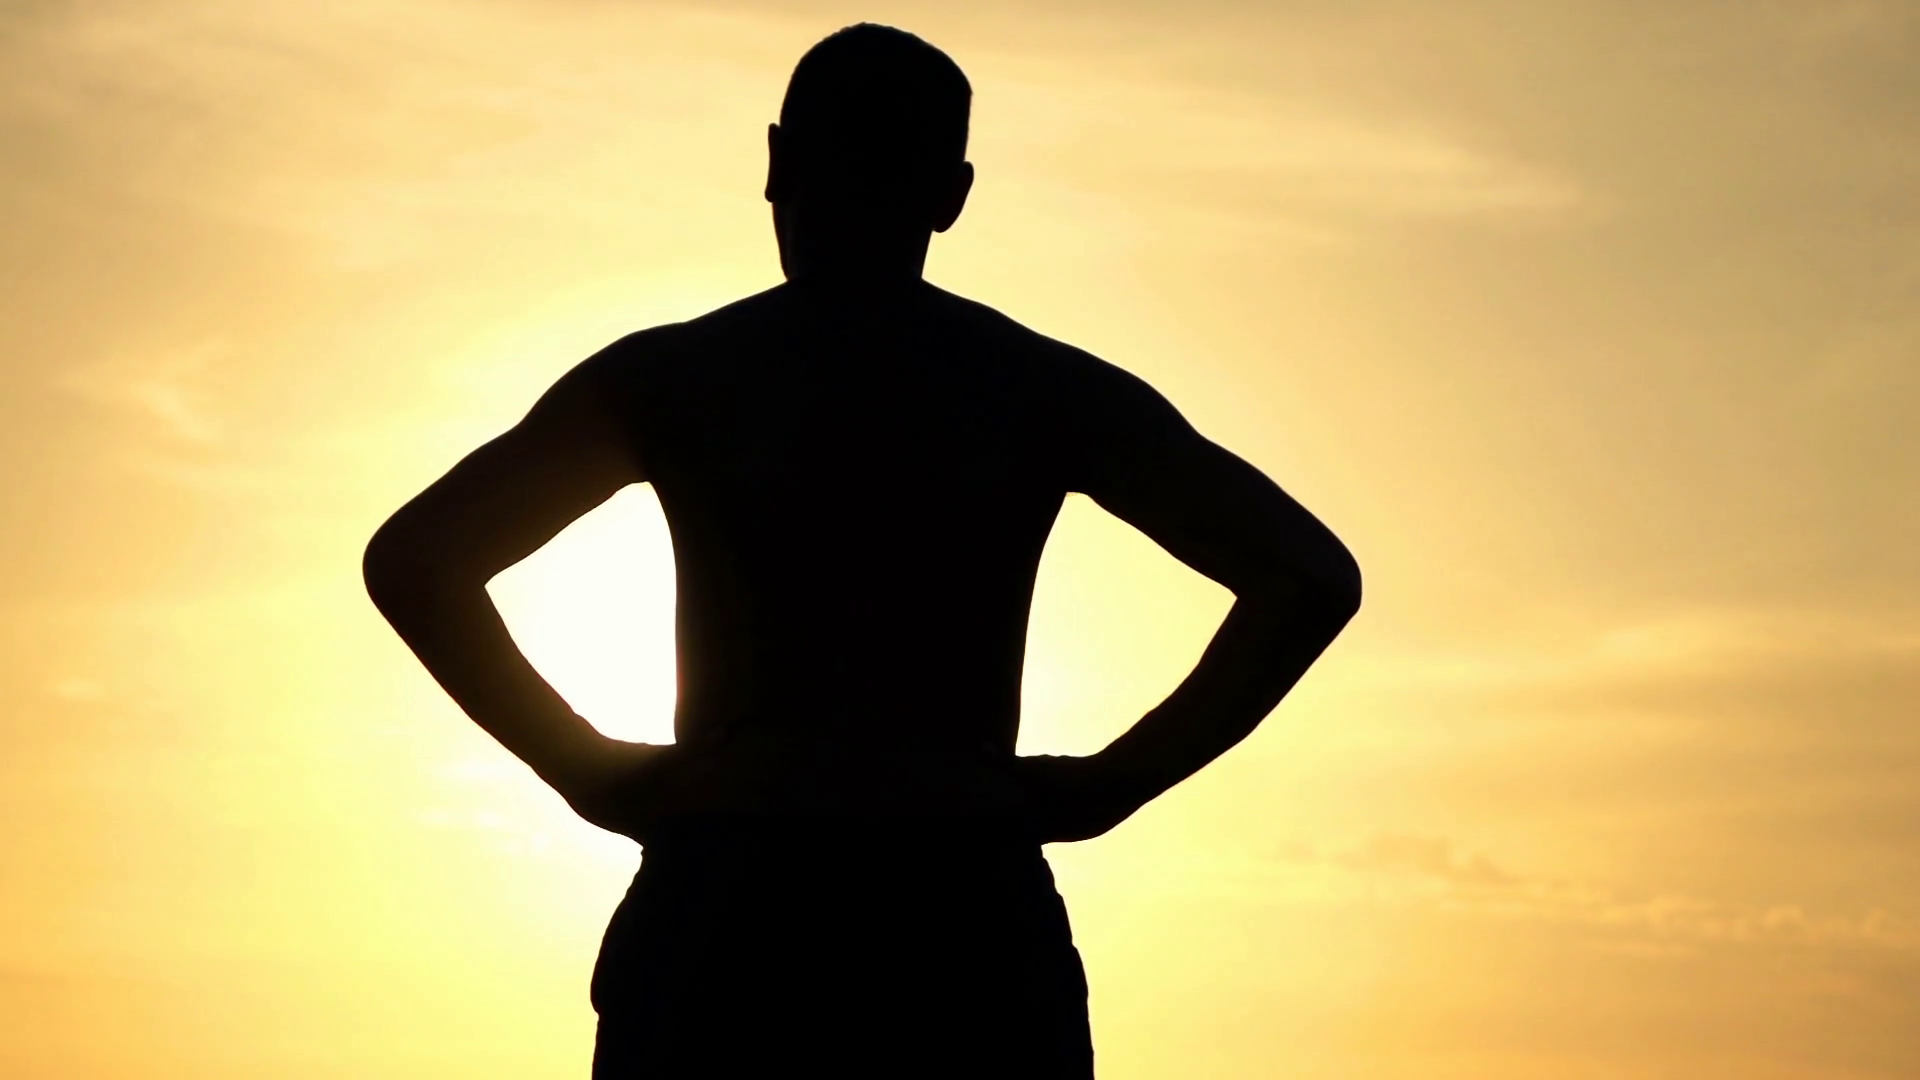 1920x1080 Silhouette Of Man Standing Against The Sky During Sunset, Super